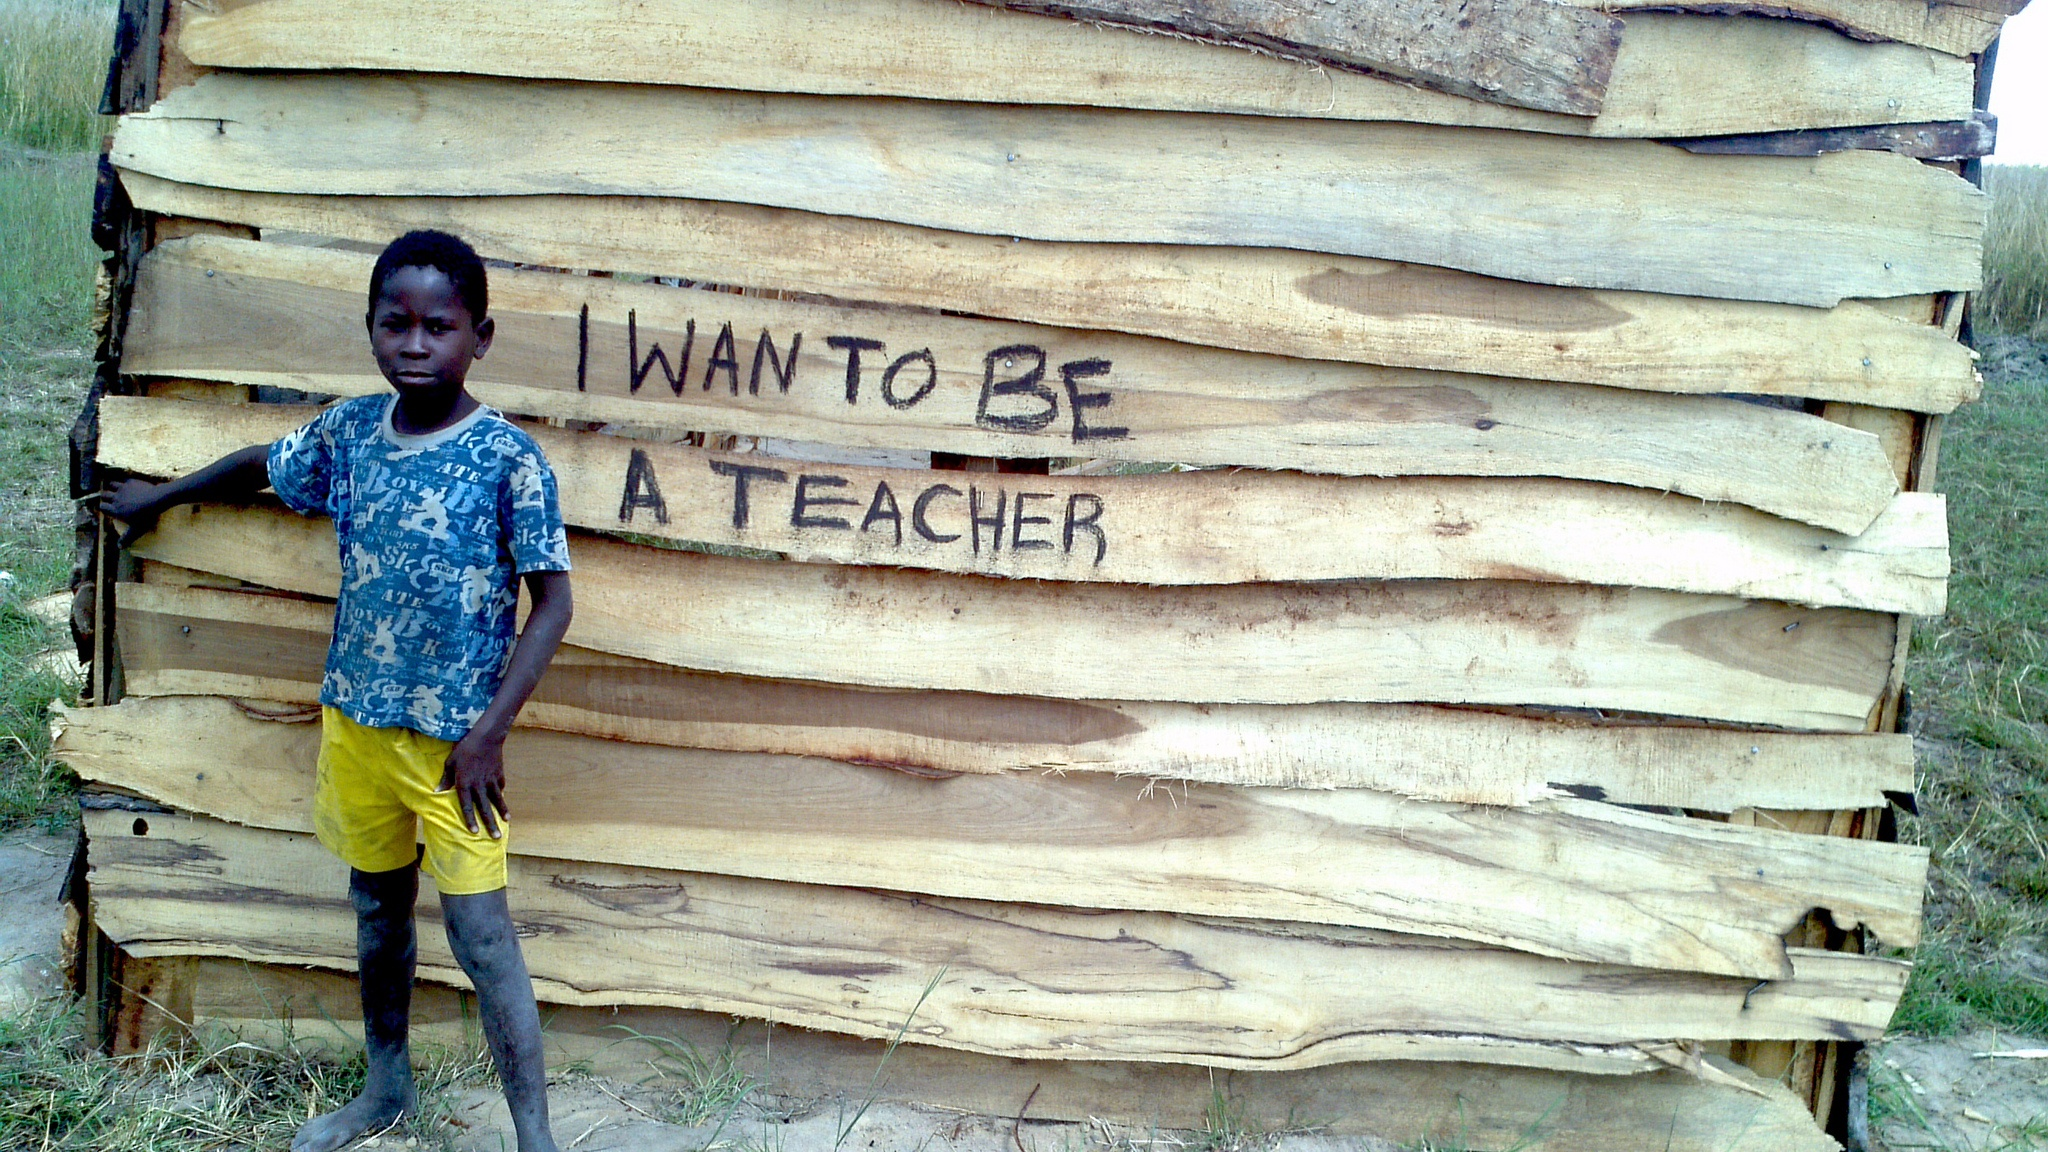 A child in zambia shares what he wants to be when he grows up